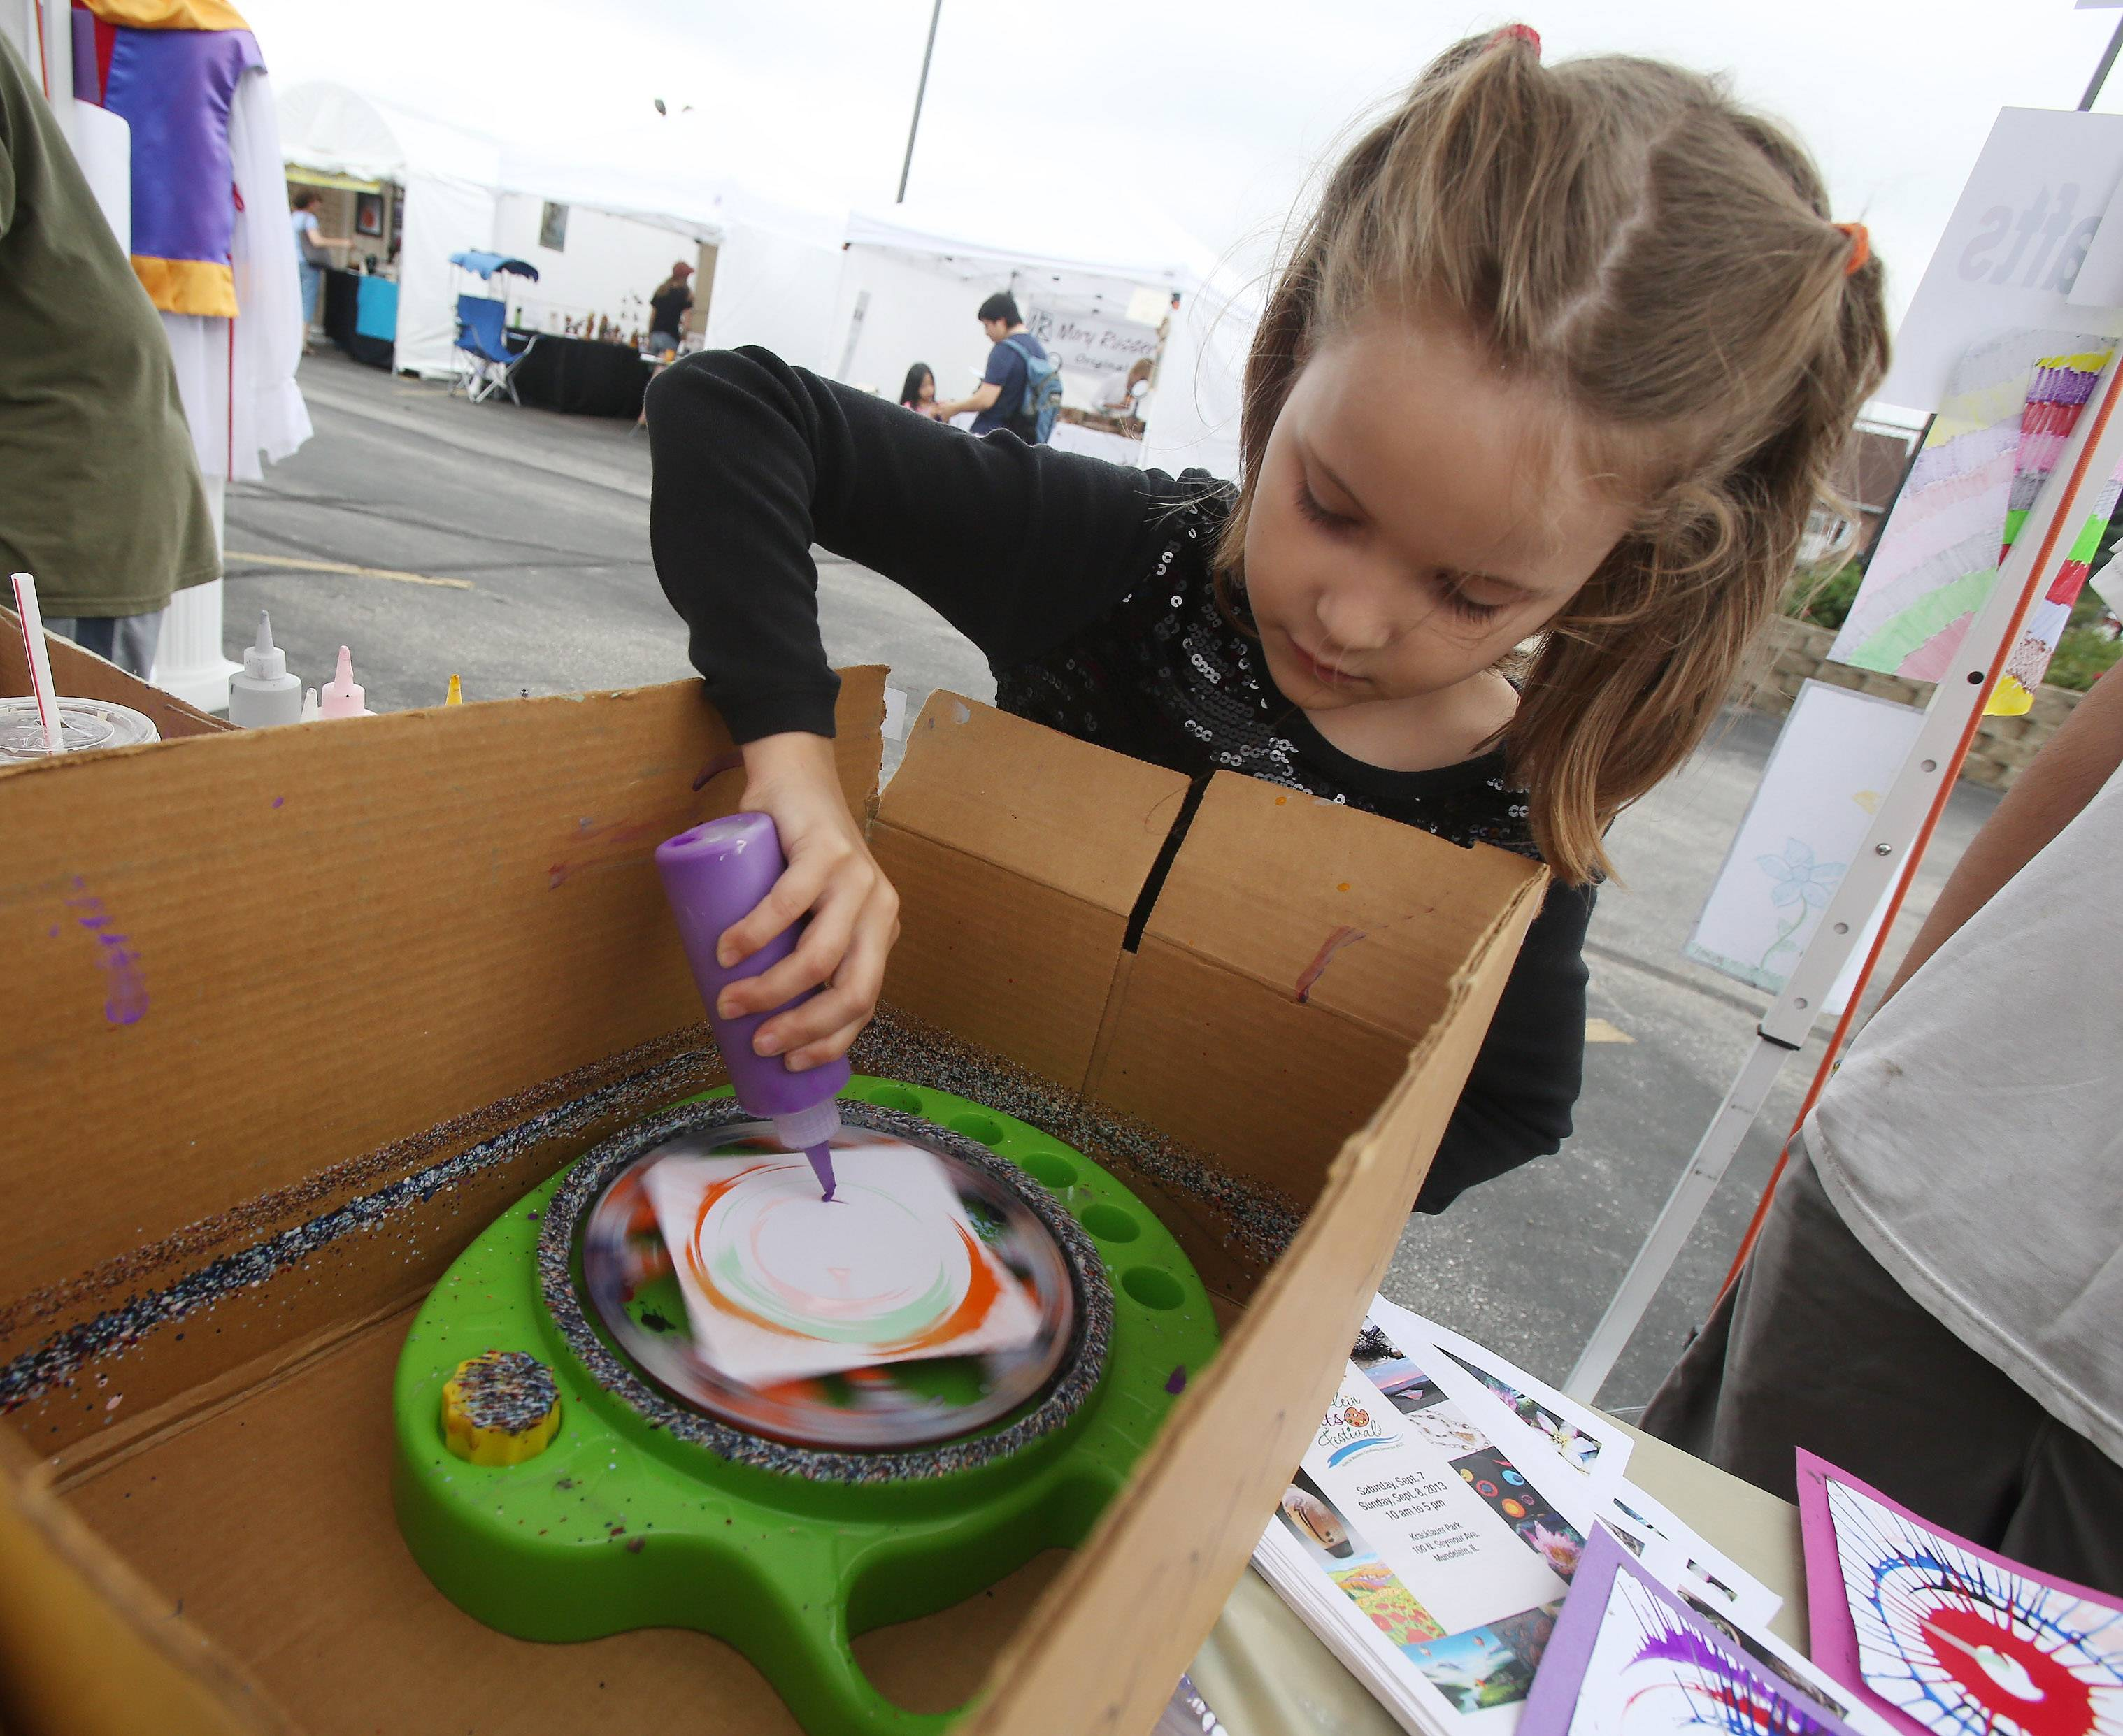 Blanca Lazar creates spin art during last year's Mundelein Arts Festival. This year's event will take place from 10 a.m. to 3 p.m. Saturday and Sunday, Sept. 6 and 7, in Kracklauer Park.